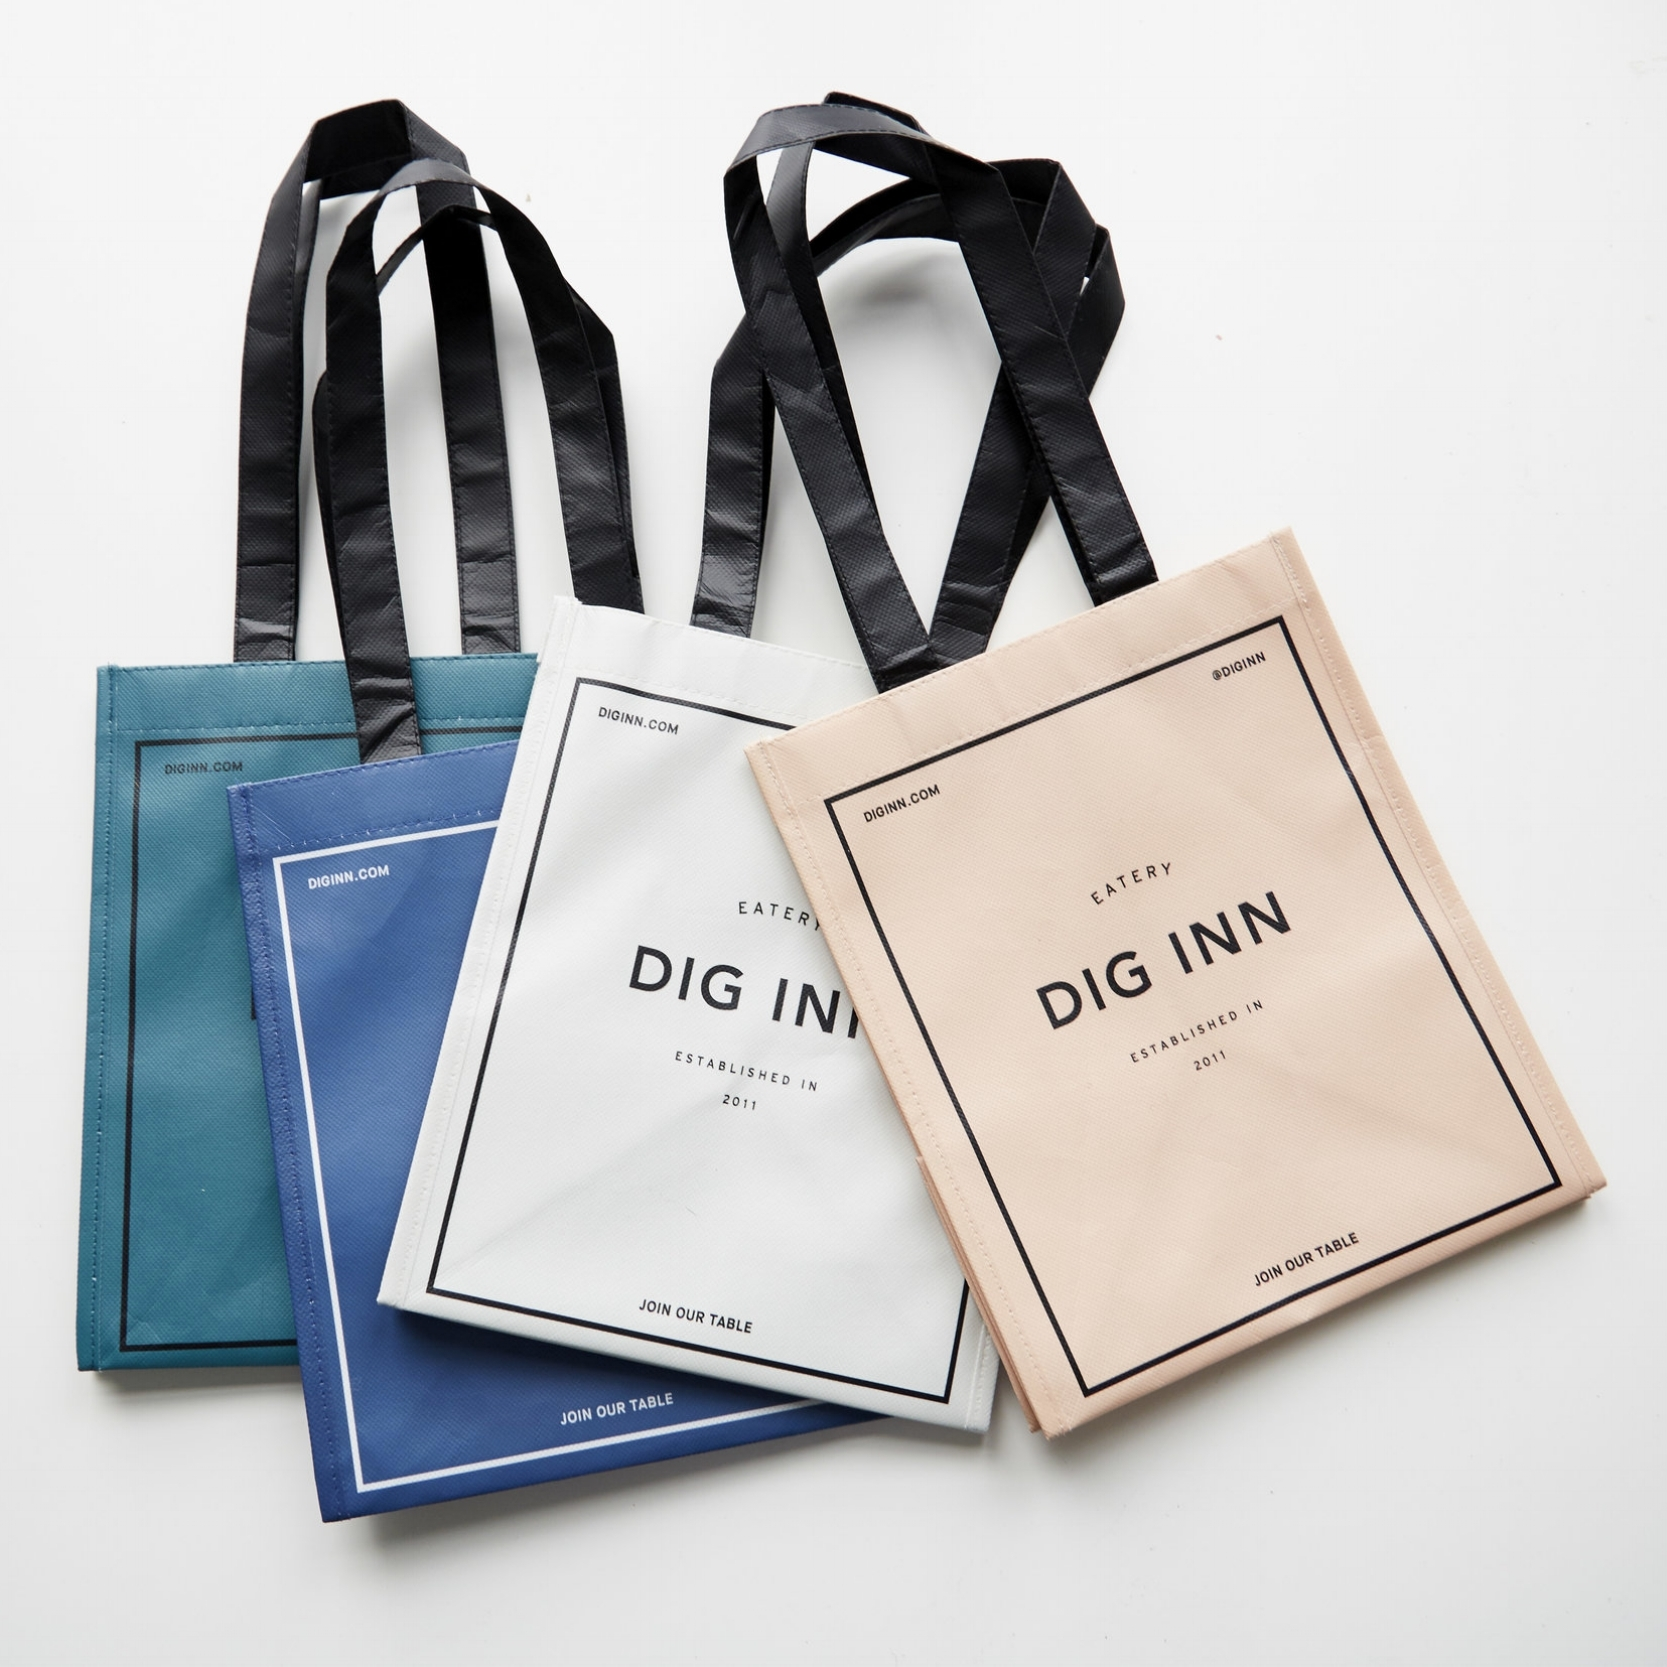 Dig Inn merchandise; bags.  Photo by Henry Hargreaves.